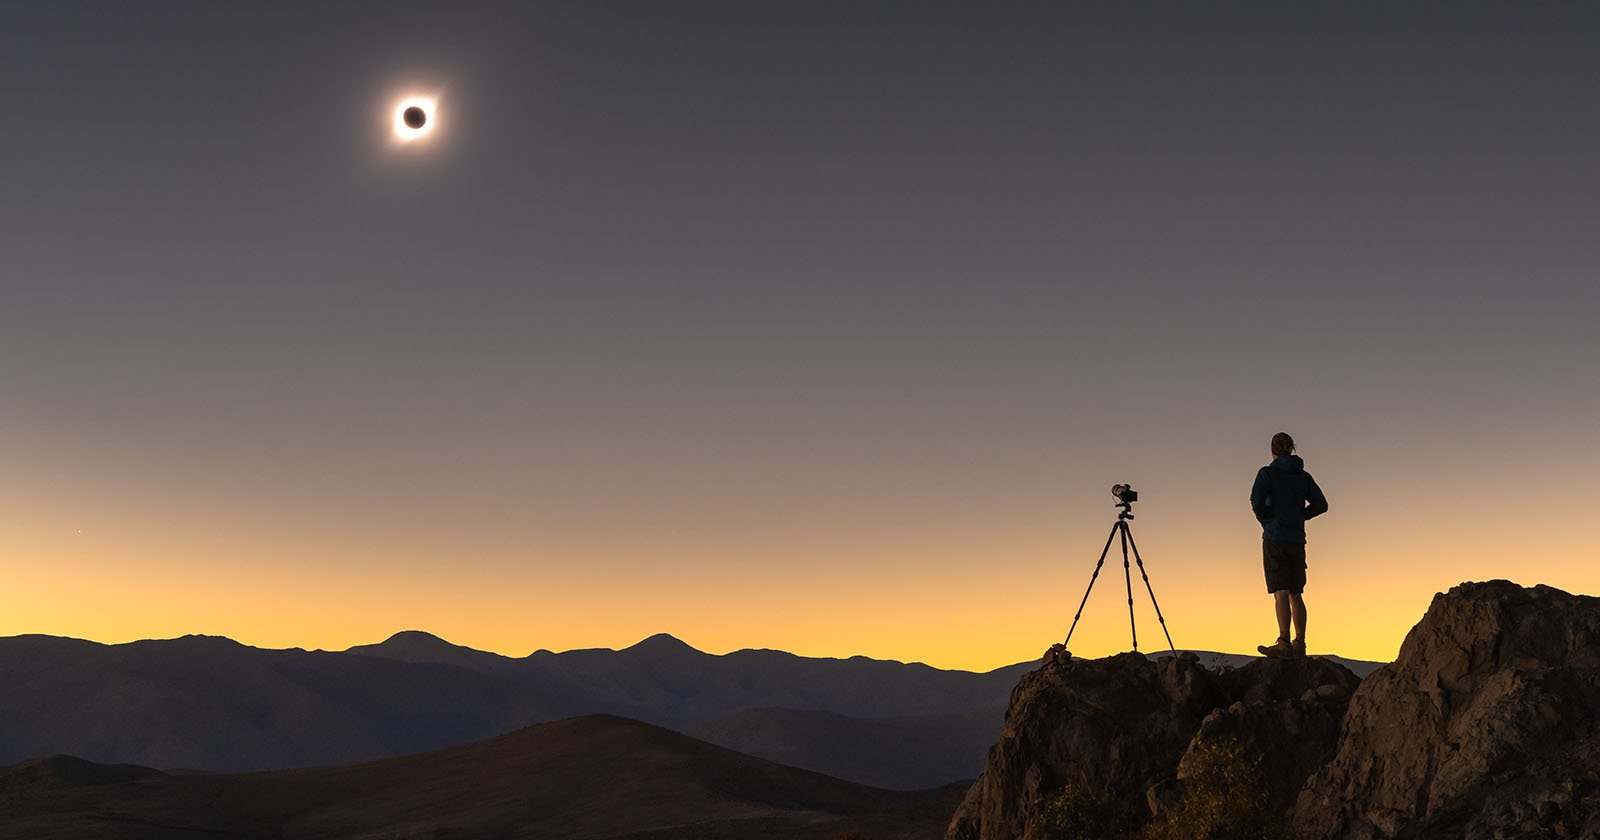 What I Learned from Capturing My First Total Solar Eclipse